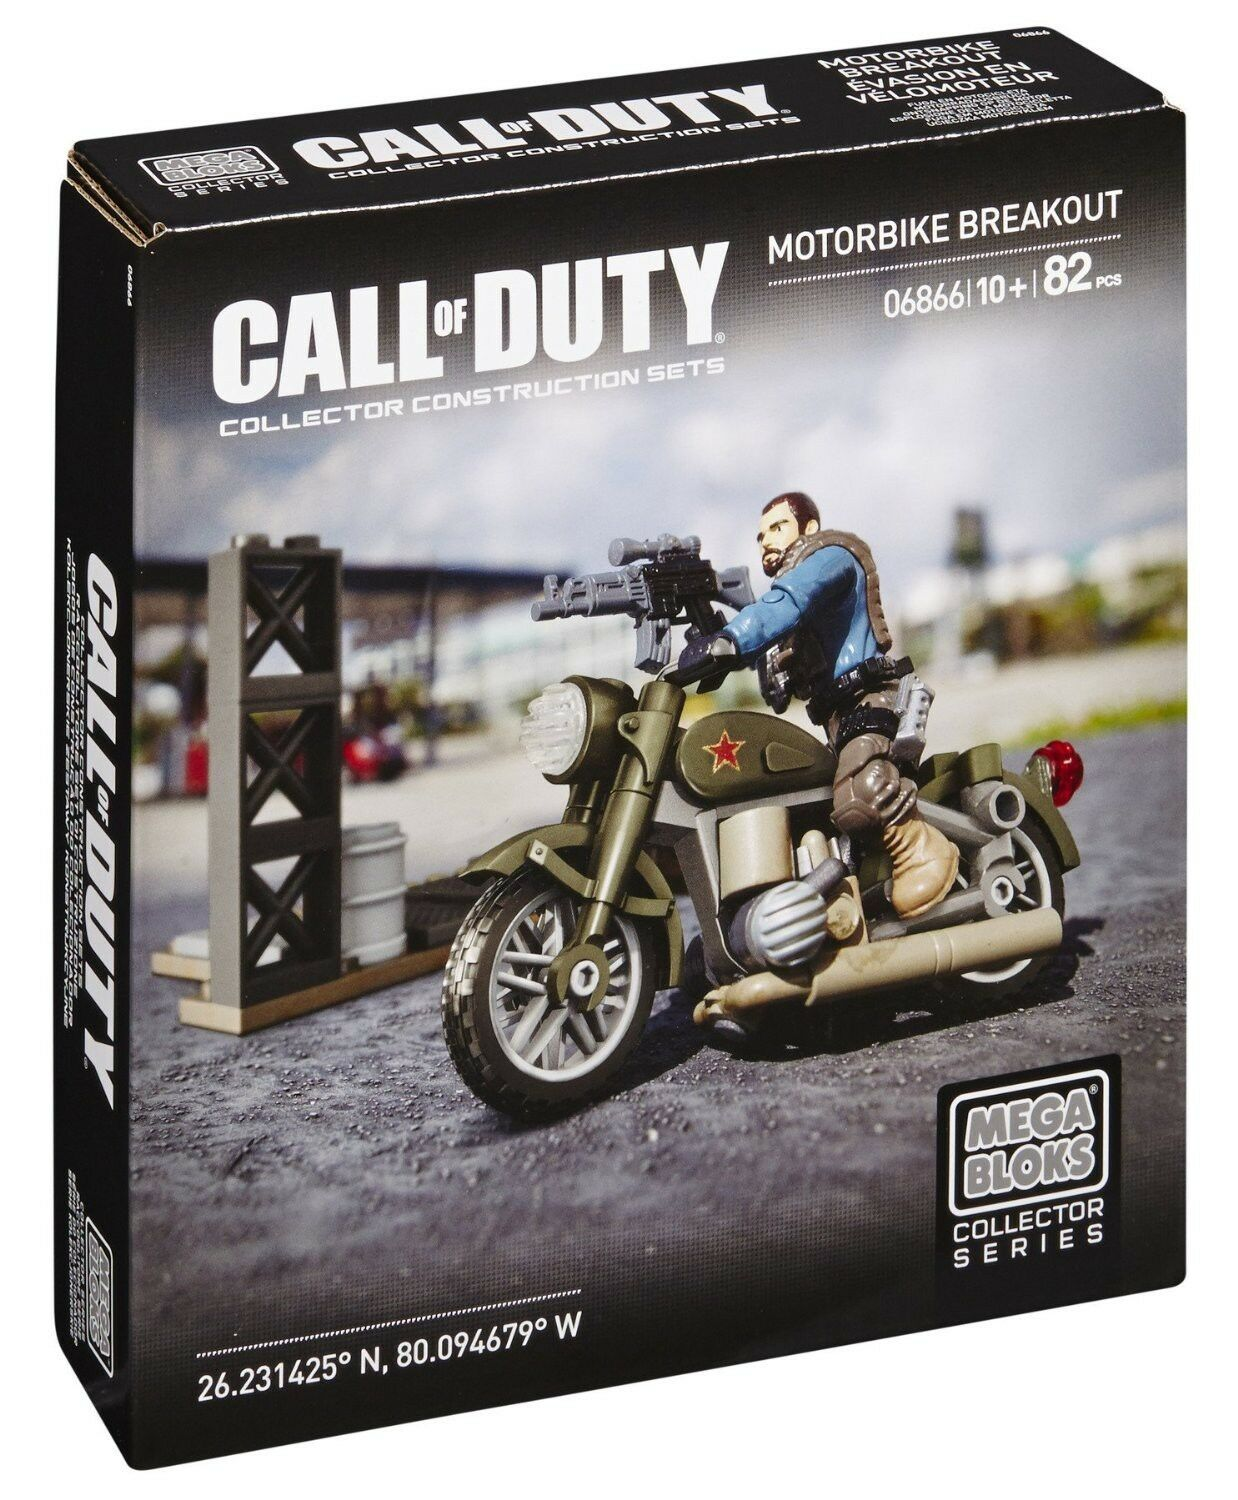 Mega Bloks Call of of of Duty Motorbike Breakout Set 87a7d4